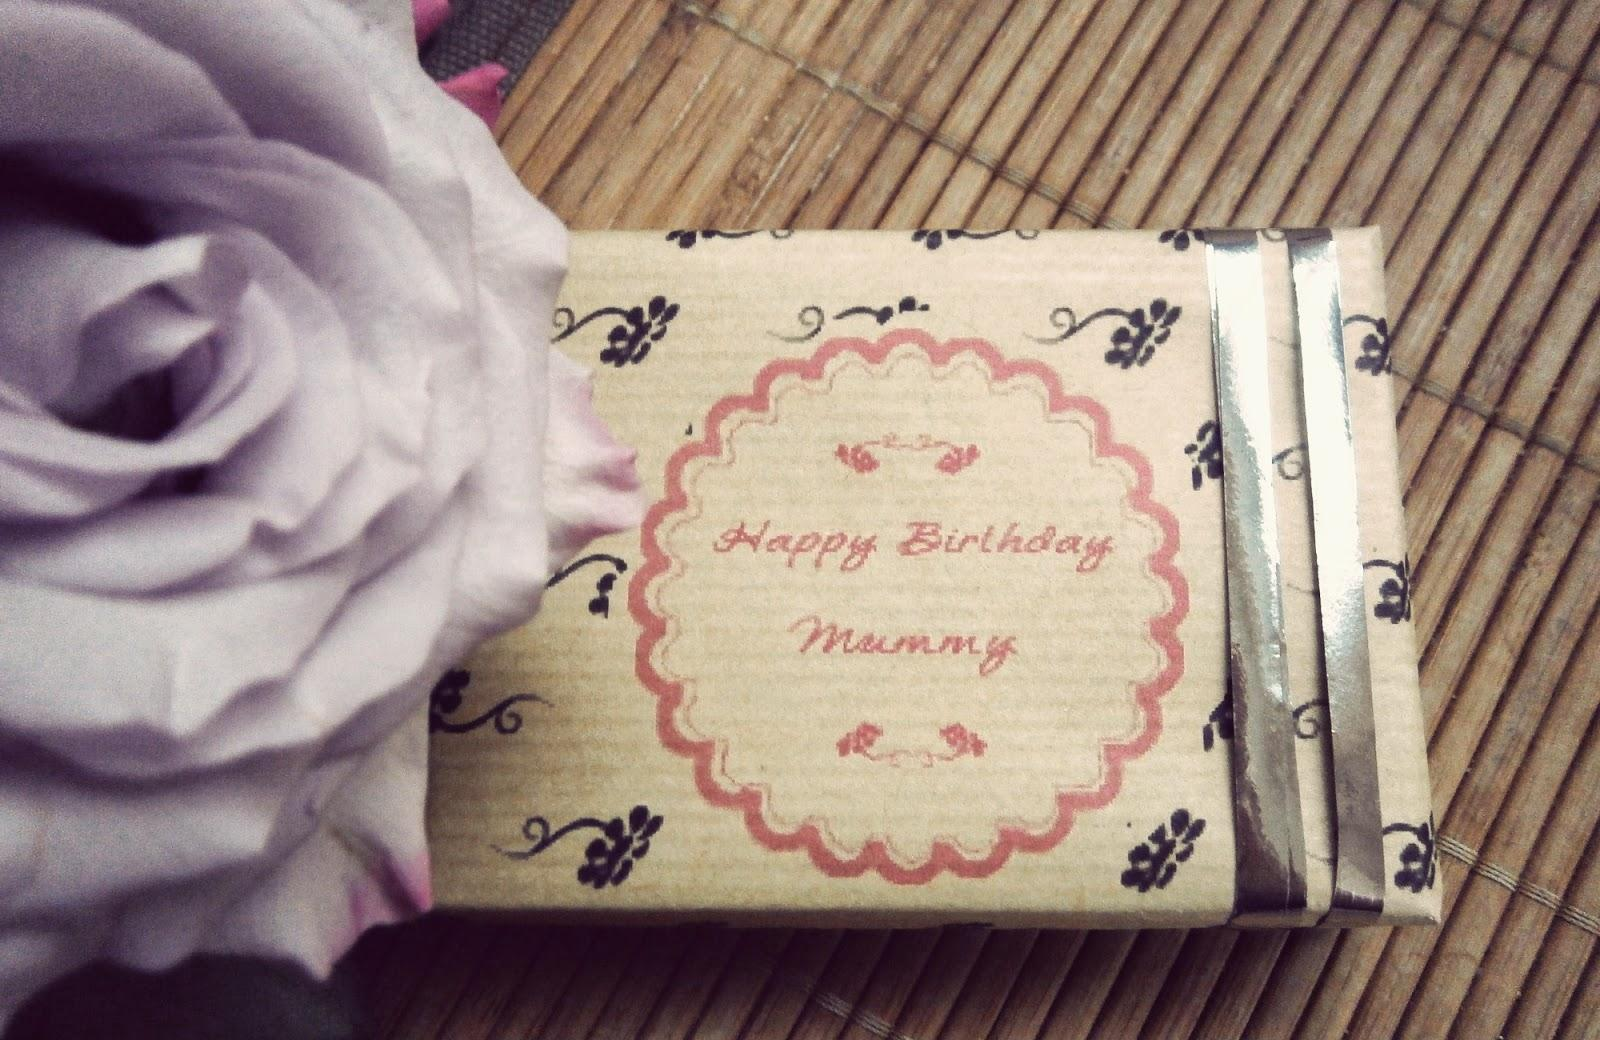 [DIY] PRINTABLE HAPPY BIRTHDAY MUMMY